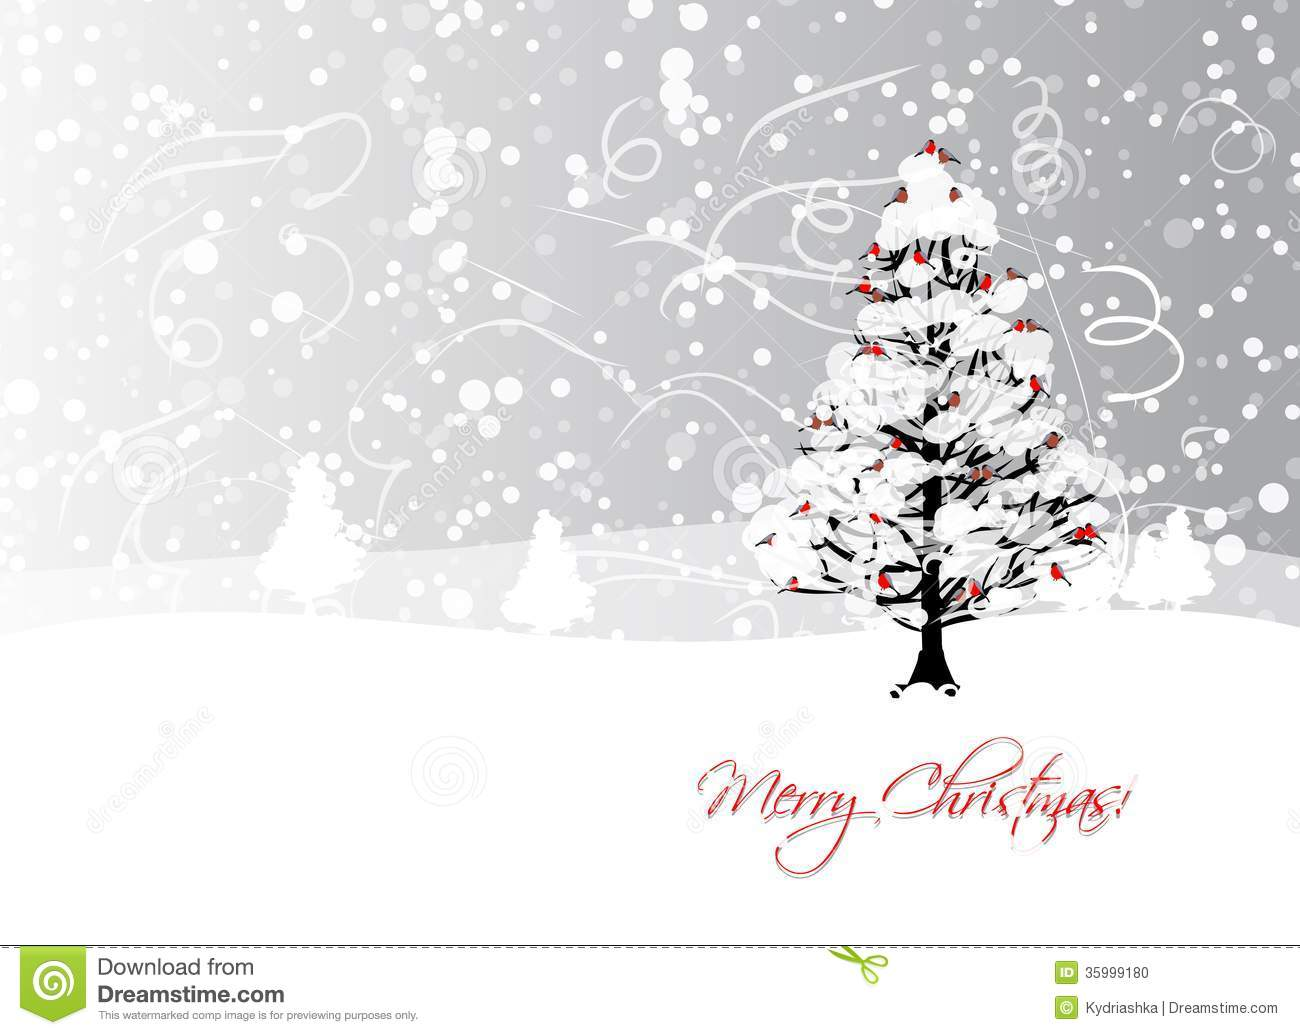 Christmas Card Design Ideas Ks2 : Christmas card design with winter tree and stock photo